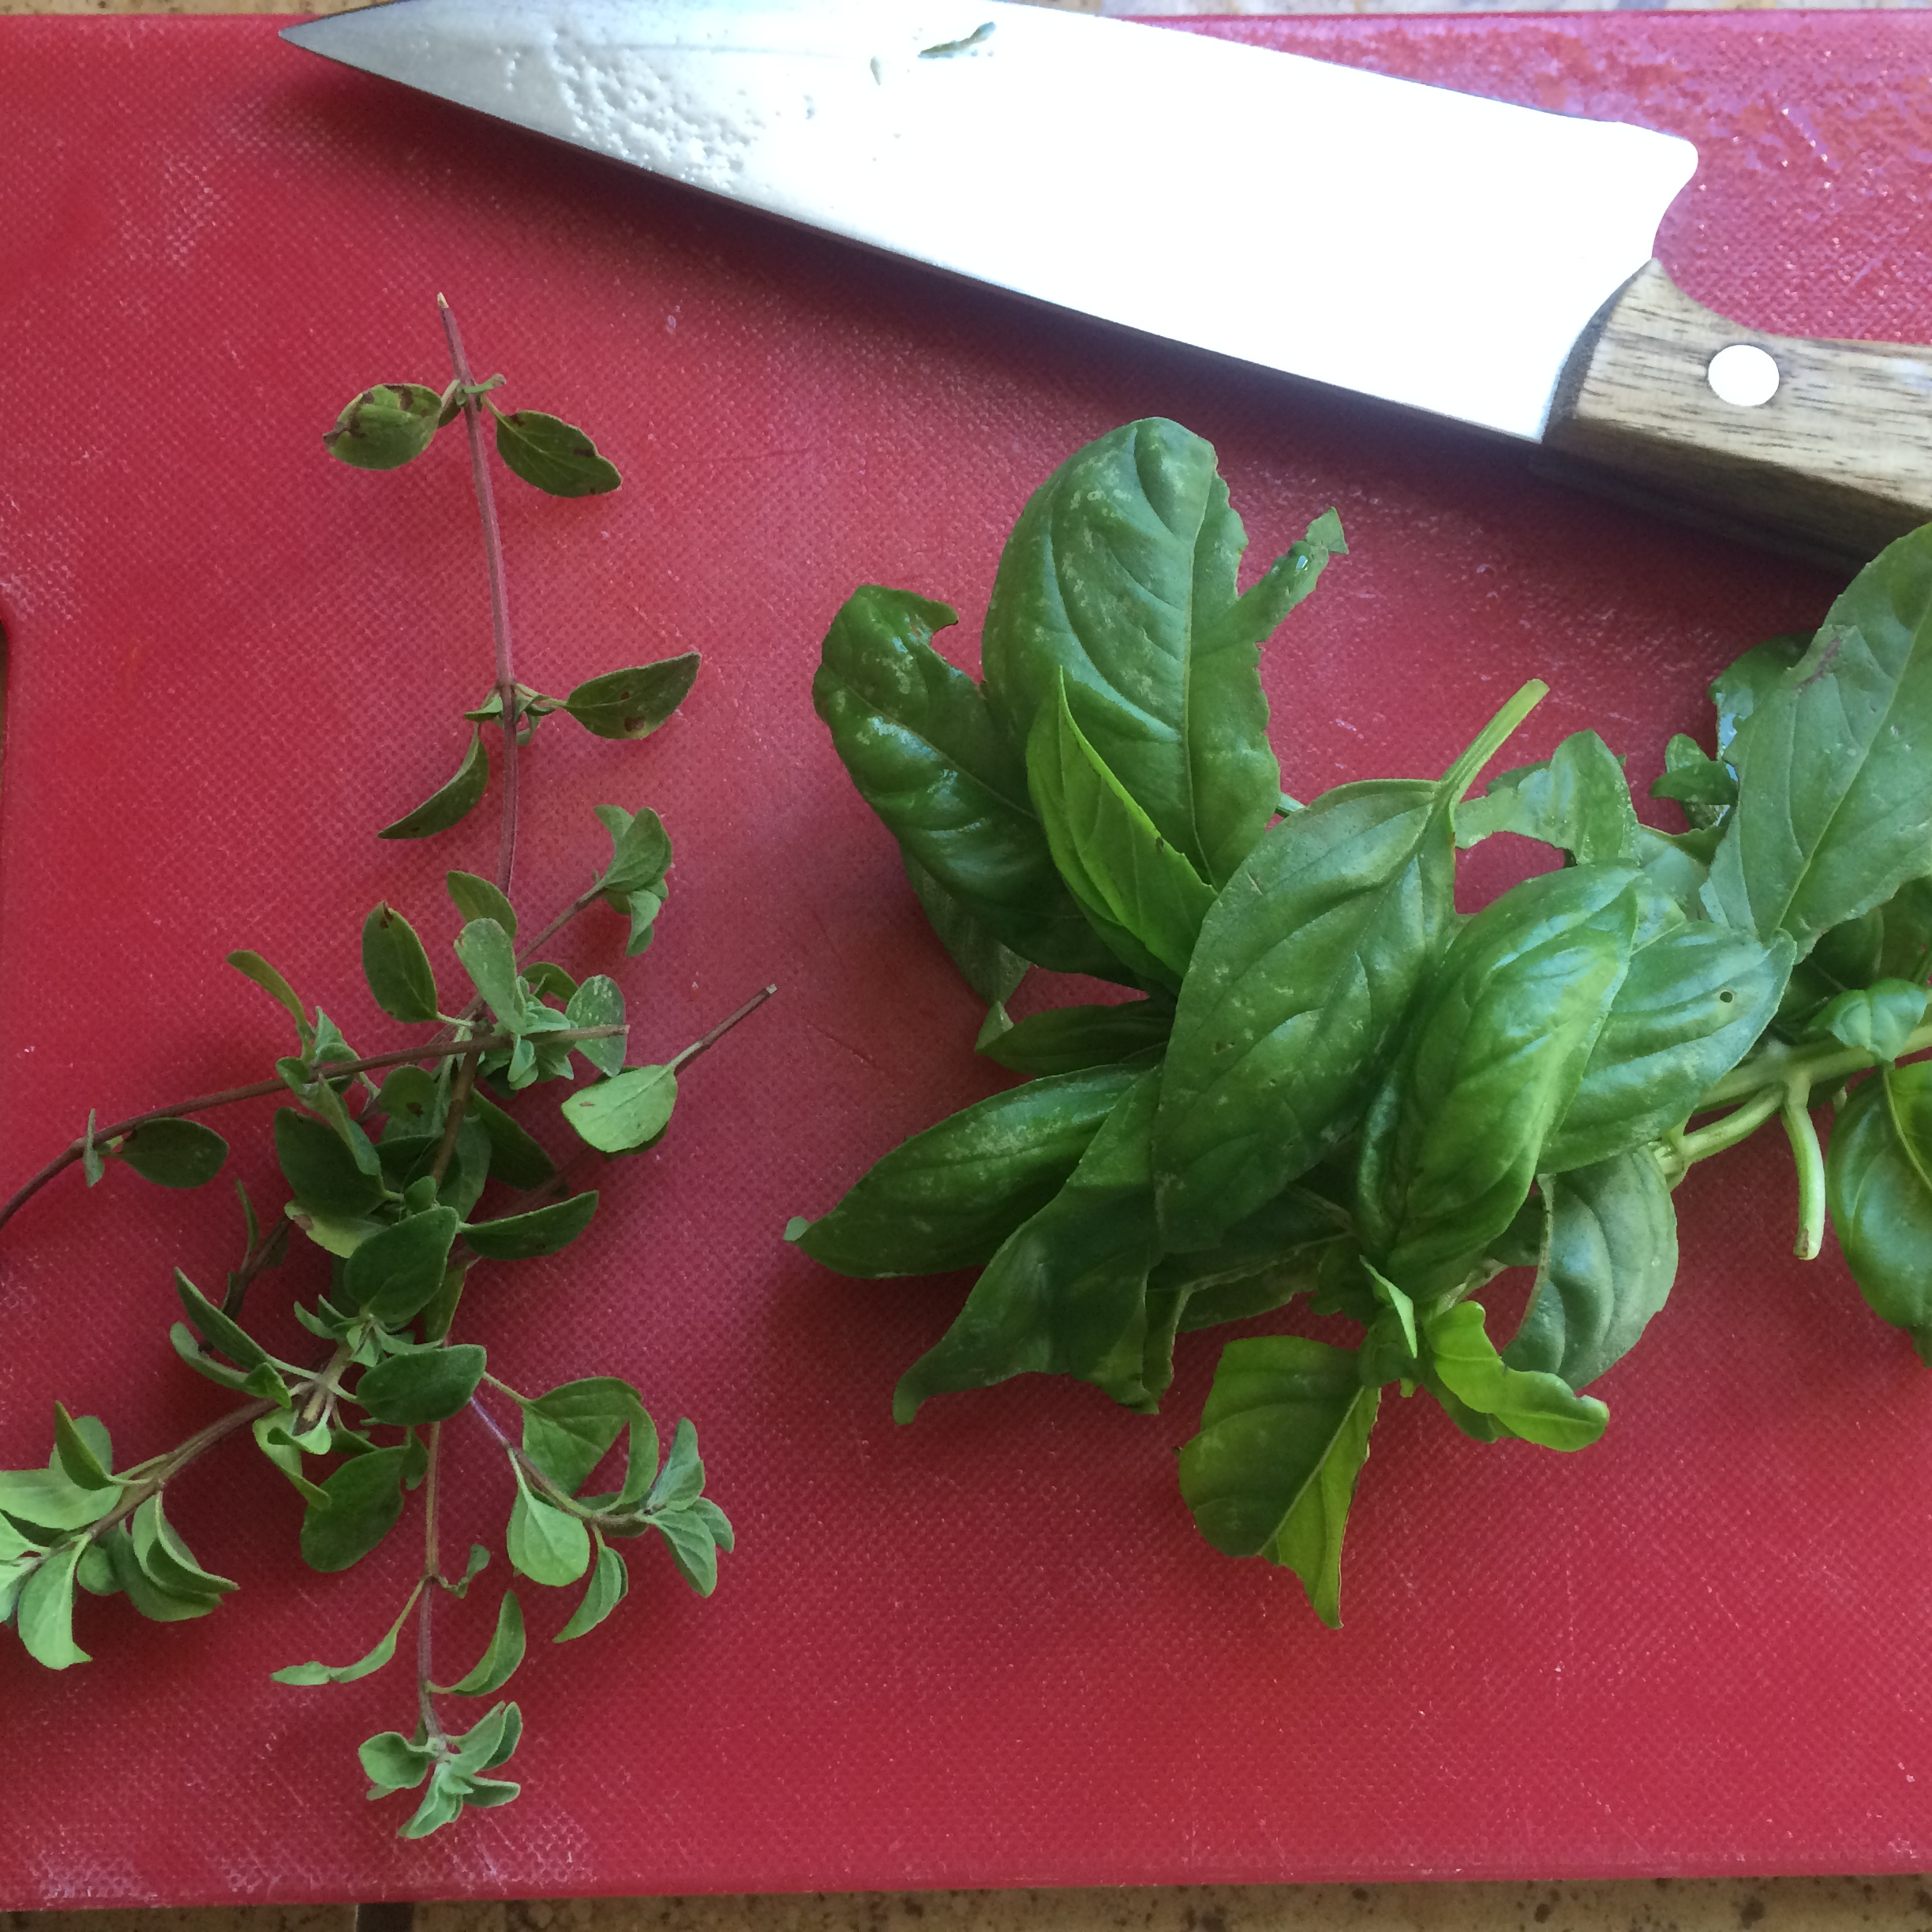 Wash and finely chop the fresh oregano and basil.